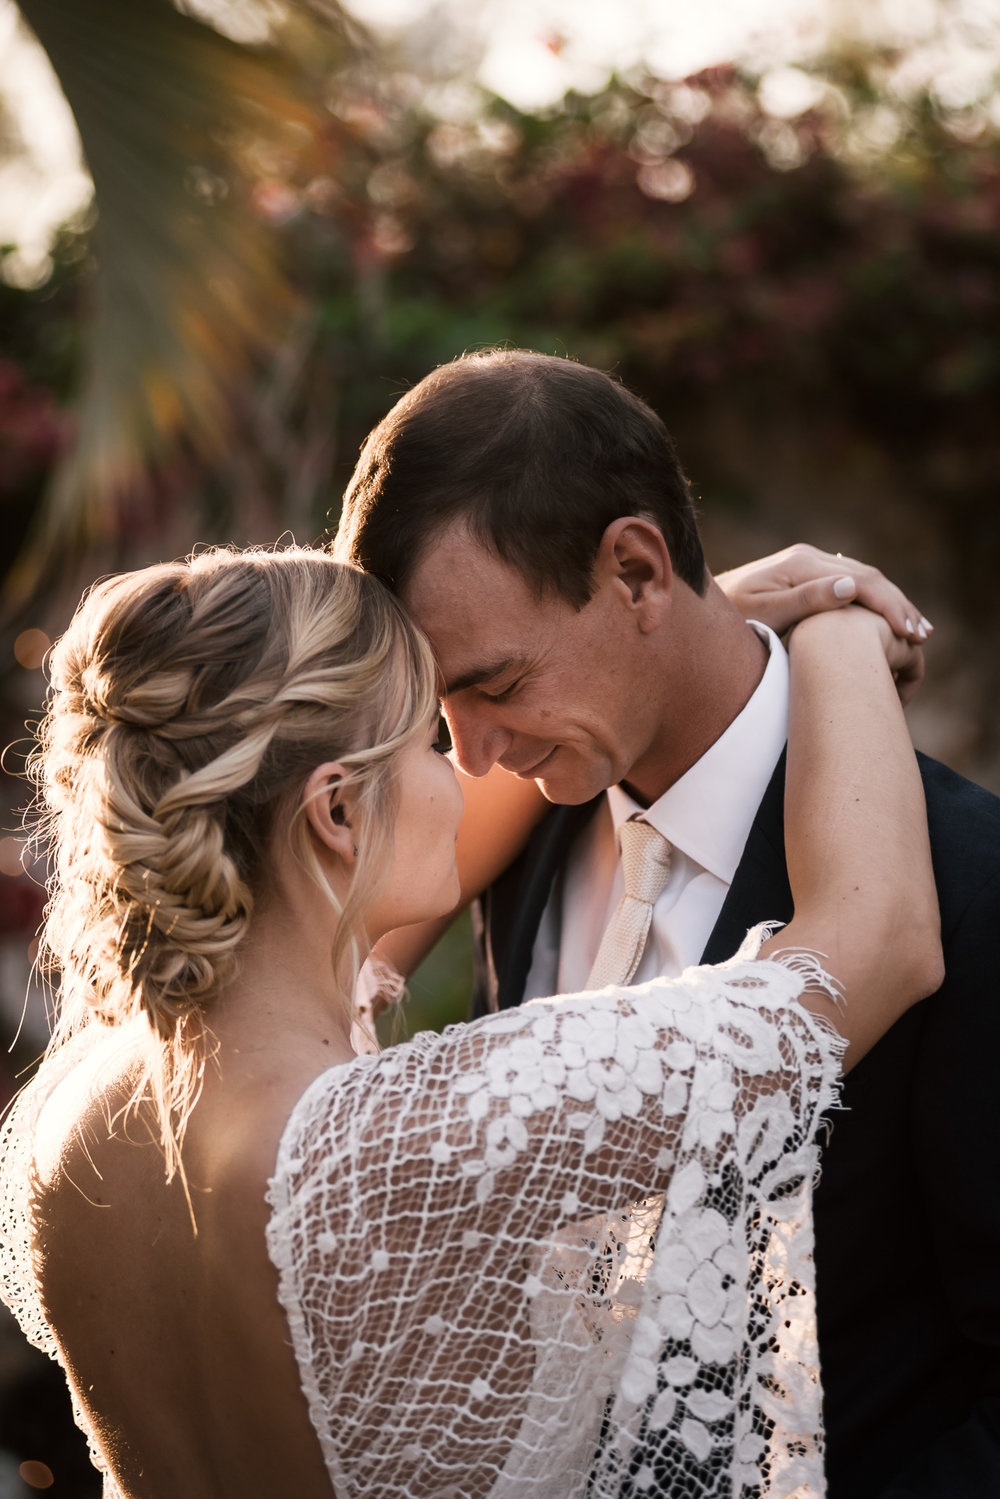 happy bride and groom hold each other close captured by photographer during romantic wedding at the historic Leo Carrillo Ranch in Carlsbad California